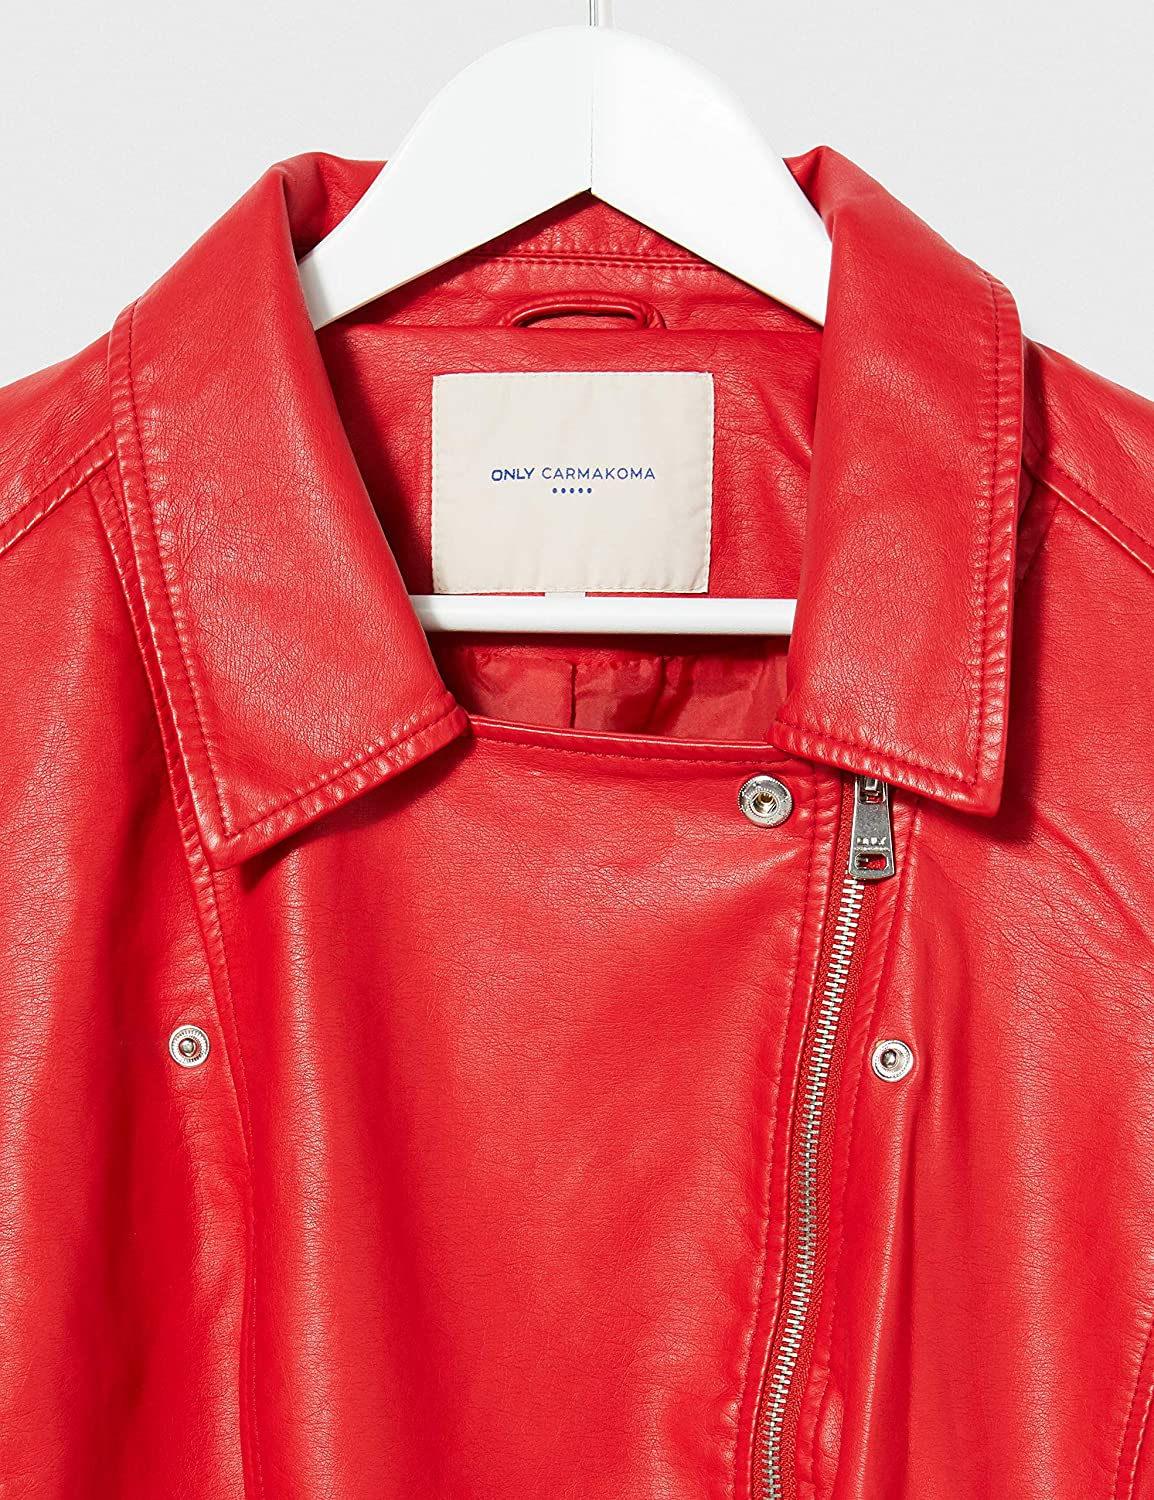 High Risk Red High Risk Red ONLY Carmakoma Womens Caremmy Faux Leather Biker Ess Jacket Red 18 Size: 44